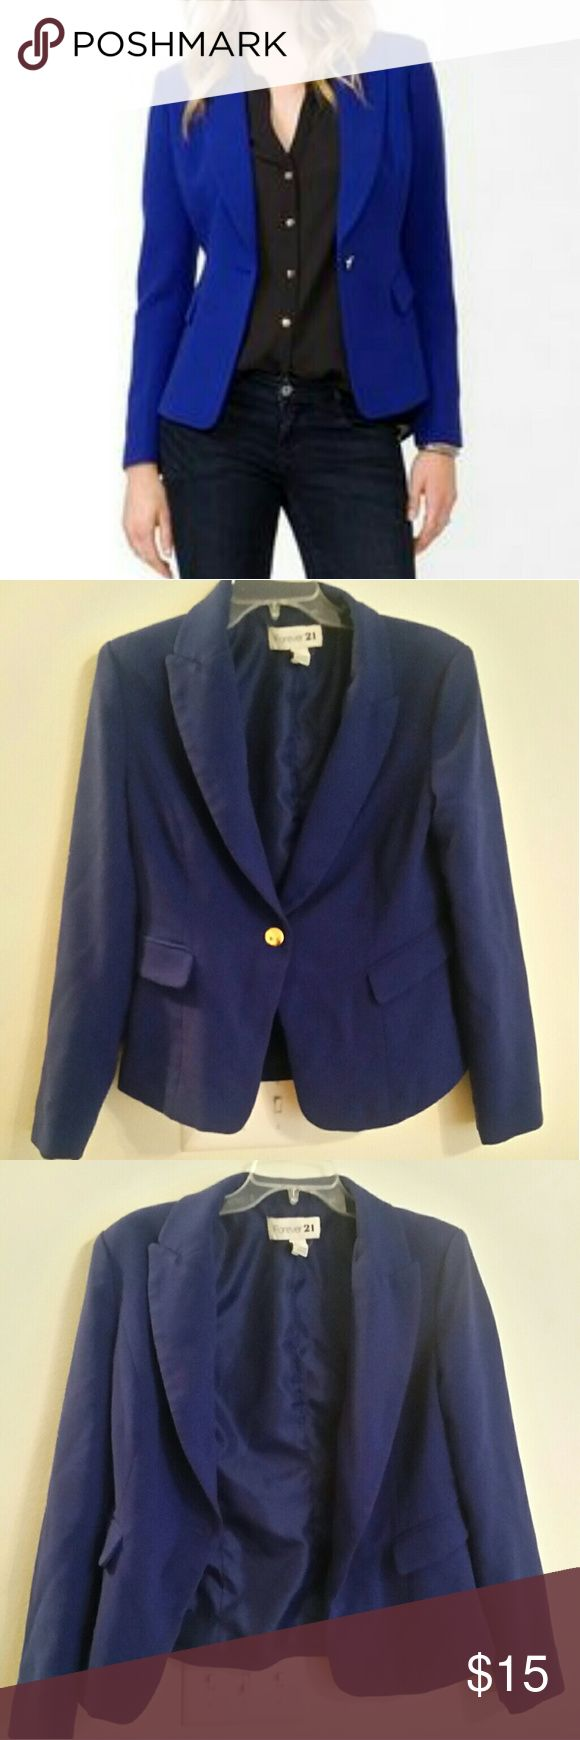 Forever 21 Royal Blue Blazer Royal Blue blazer from Forever 21. Cover photo is an example styling shot. Excellent used condition. Says L, better at a M/L. Forever 21 Jackets & Coats Blazers